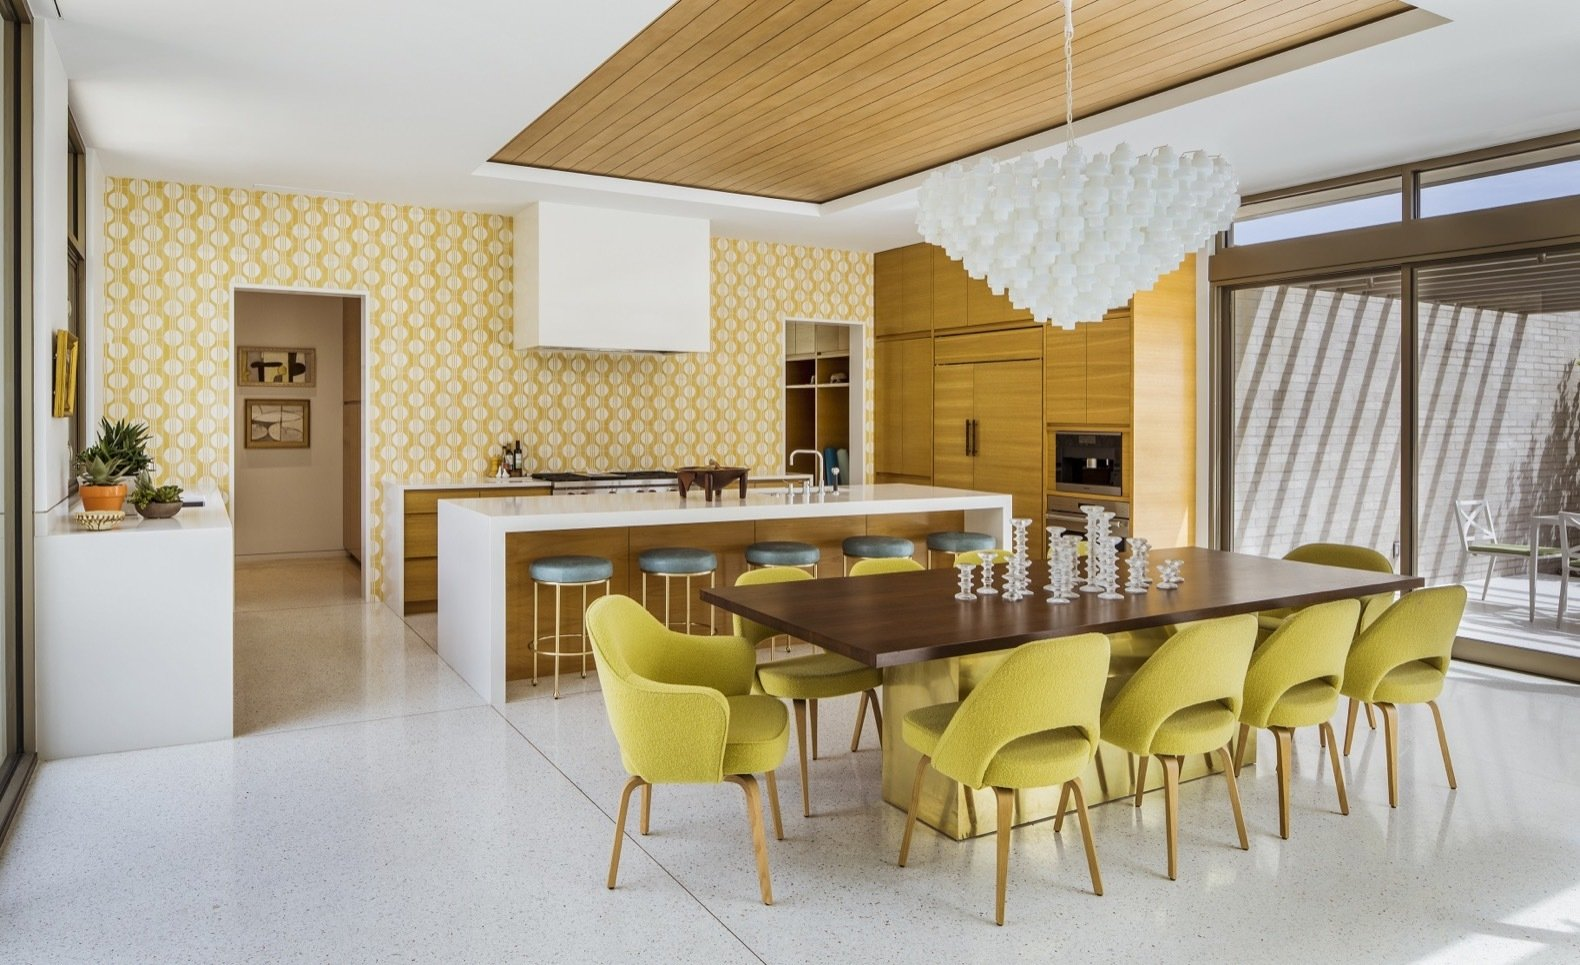 Dining Room, Chair, Table, Terrazzo Floor, and Accent Lighting Yellow Popham Design tiles add whimsy to the kitchen. A vintage Murano glass chandelier hangs above a custom table surrounded by DWR chairs.